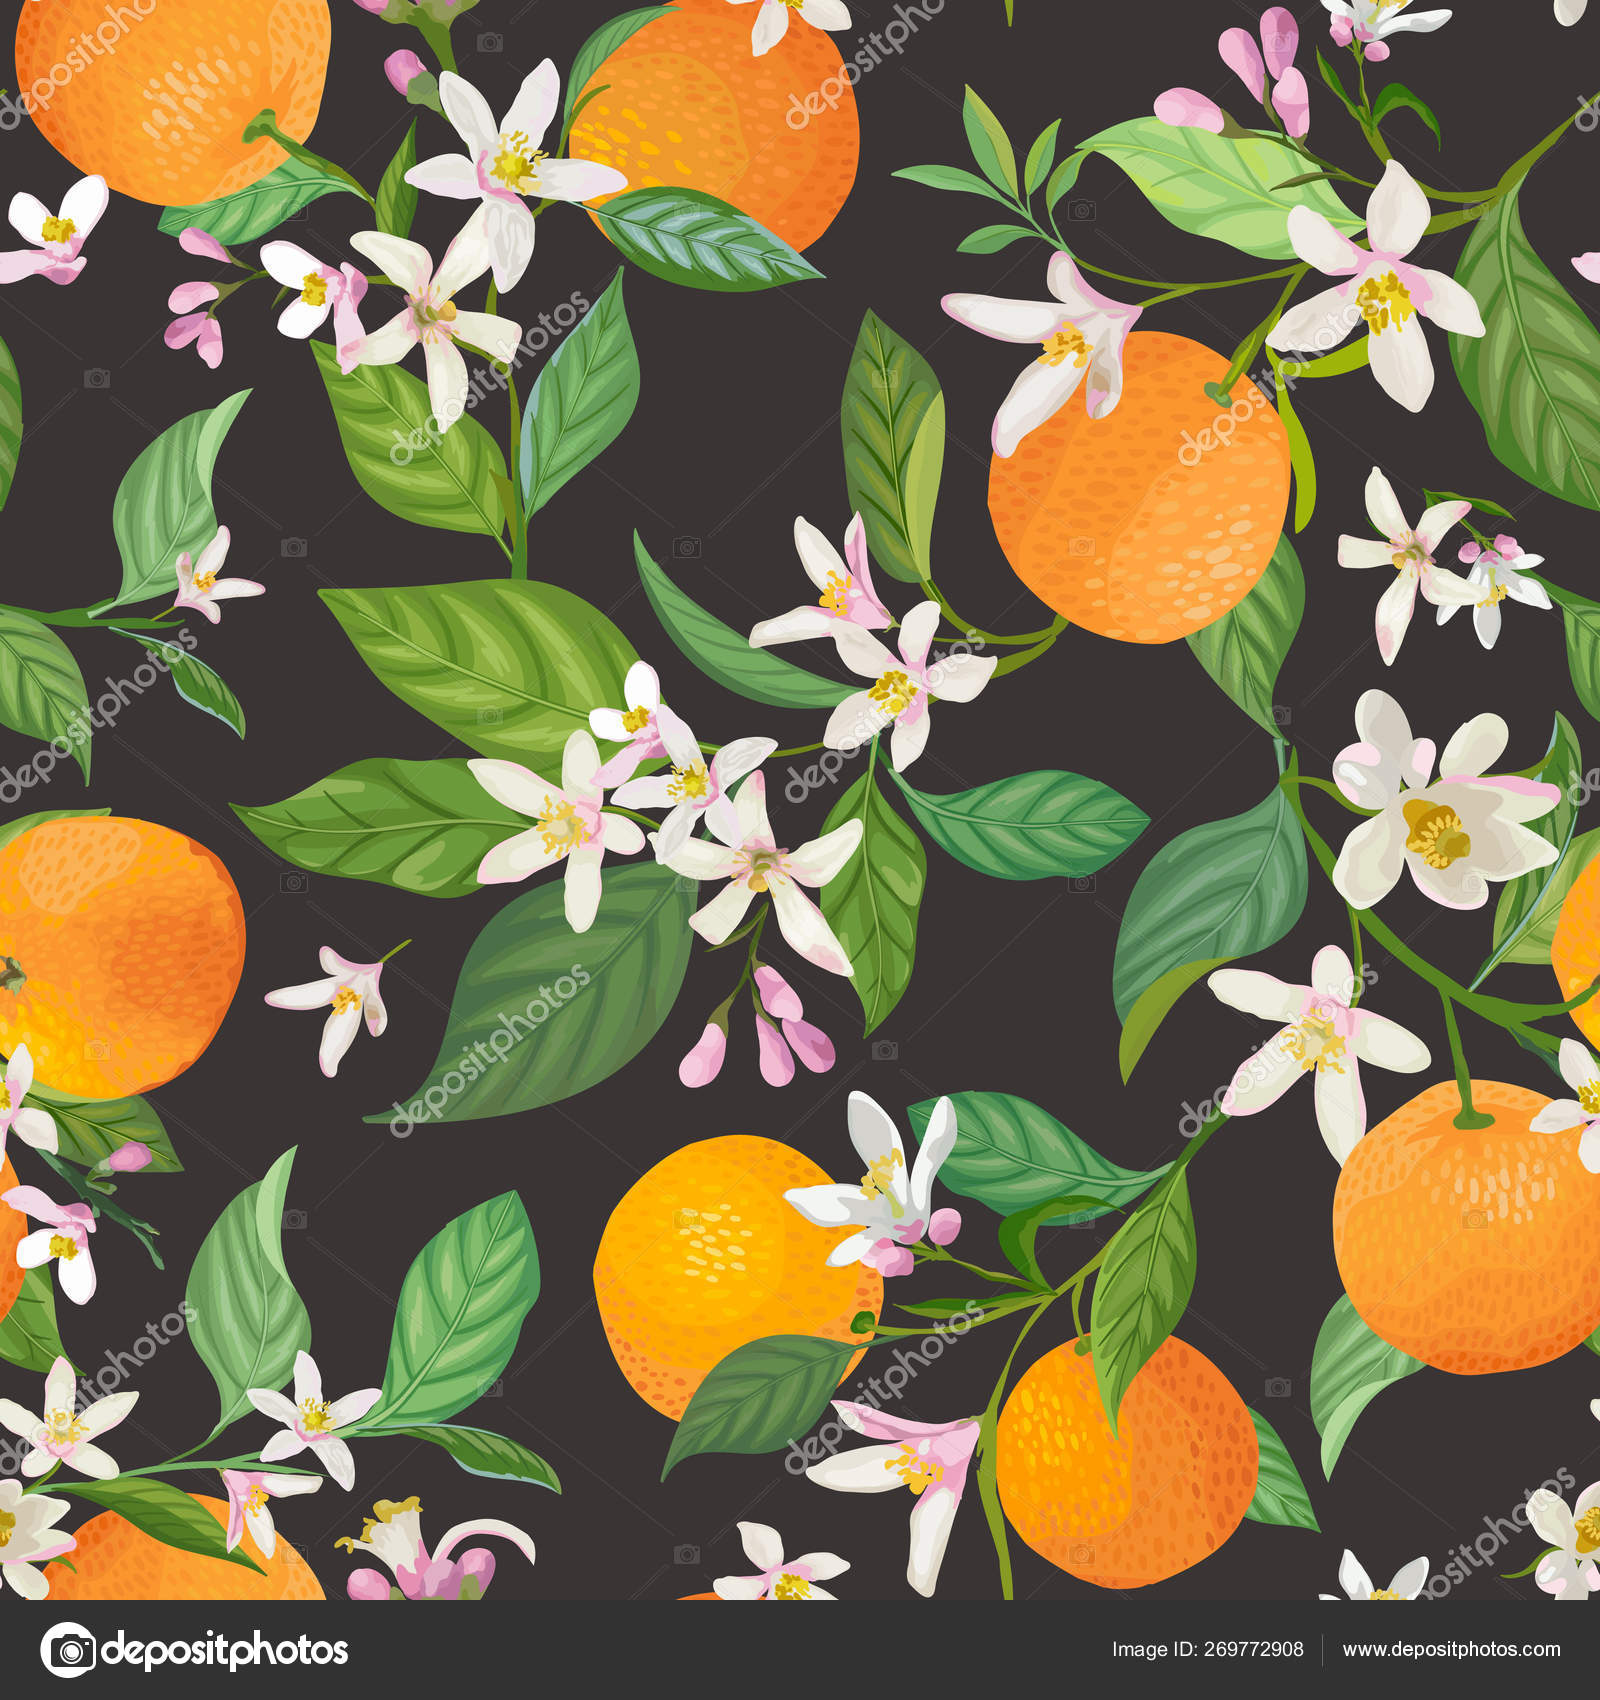 depositphotos 269772908 stock illustration seamless orange pattern with tropic